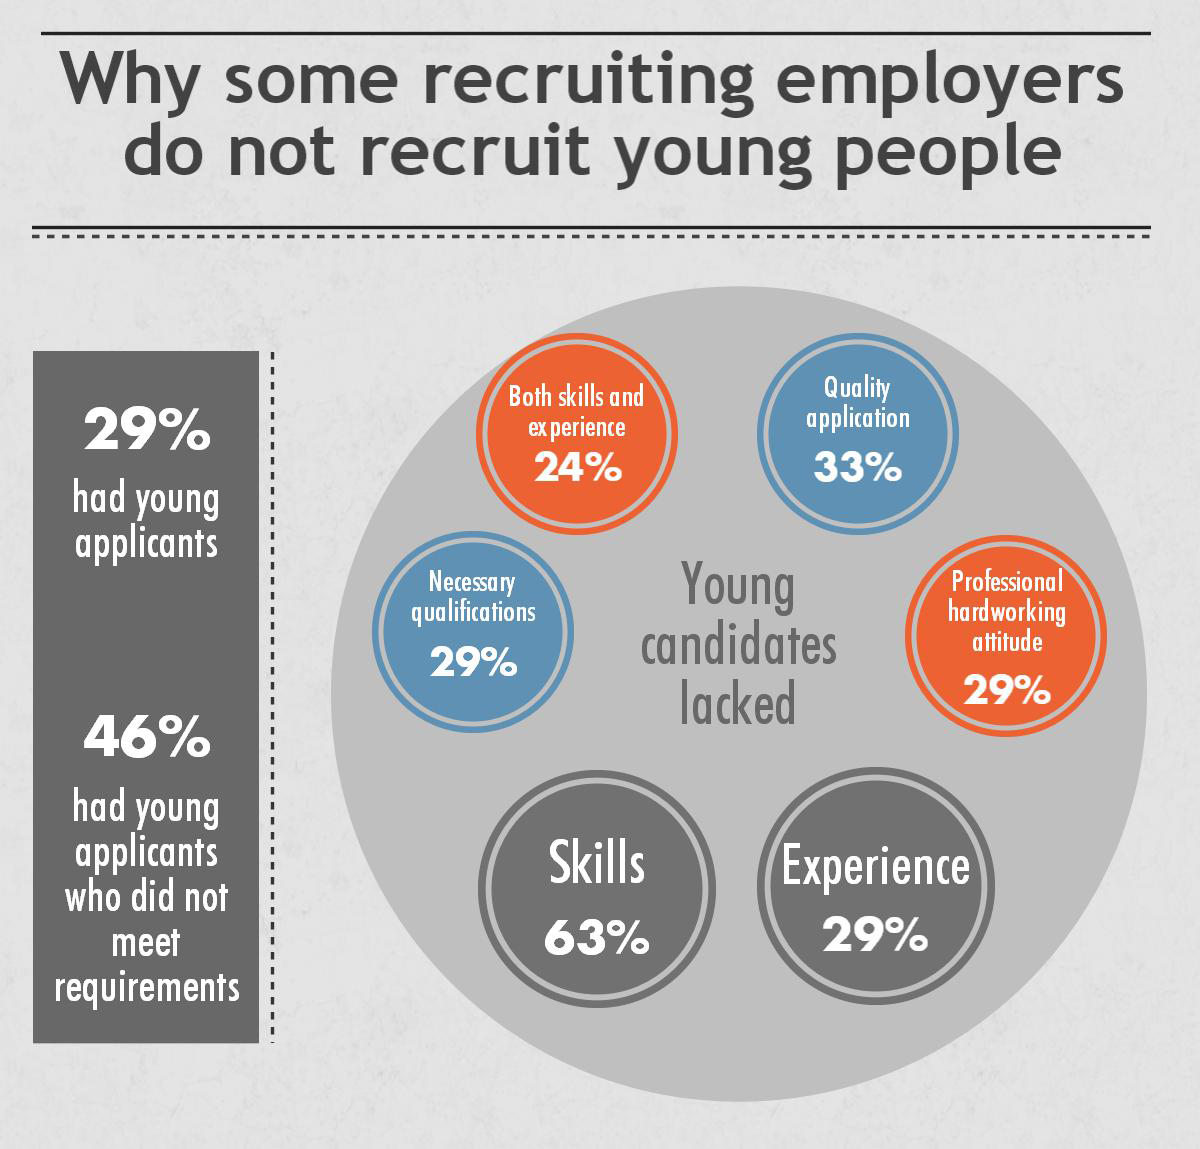 why some recruiting employers do not recruit young people